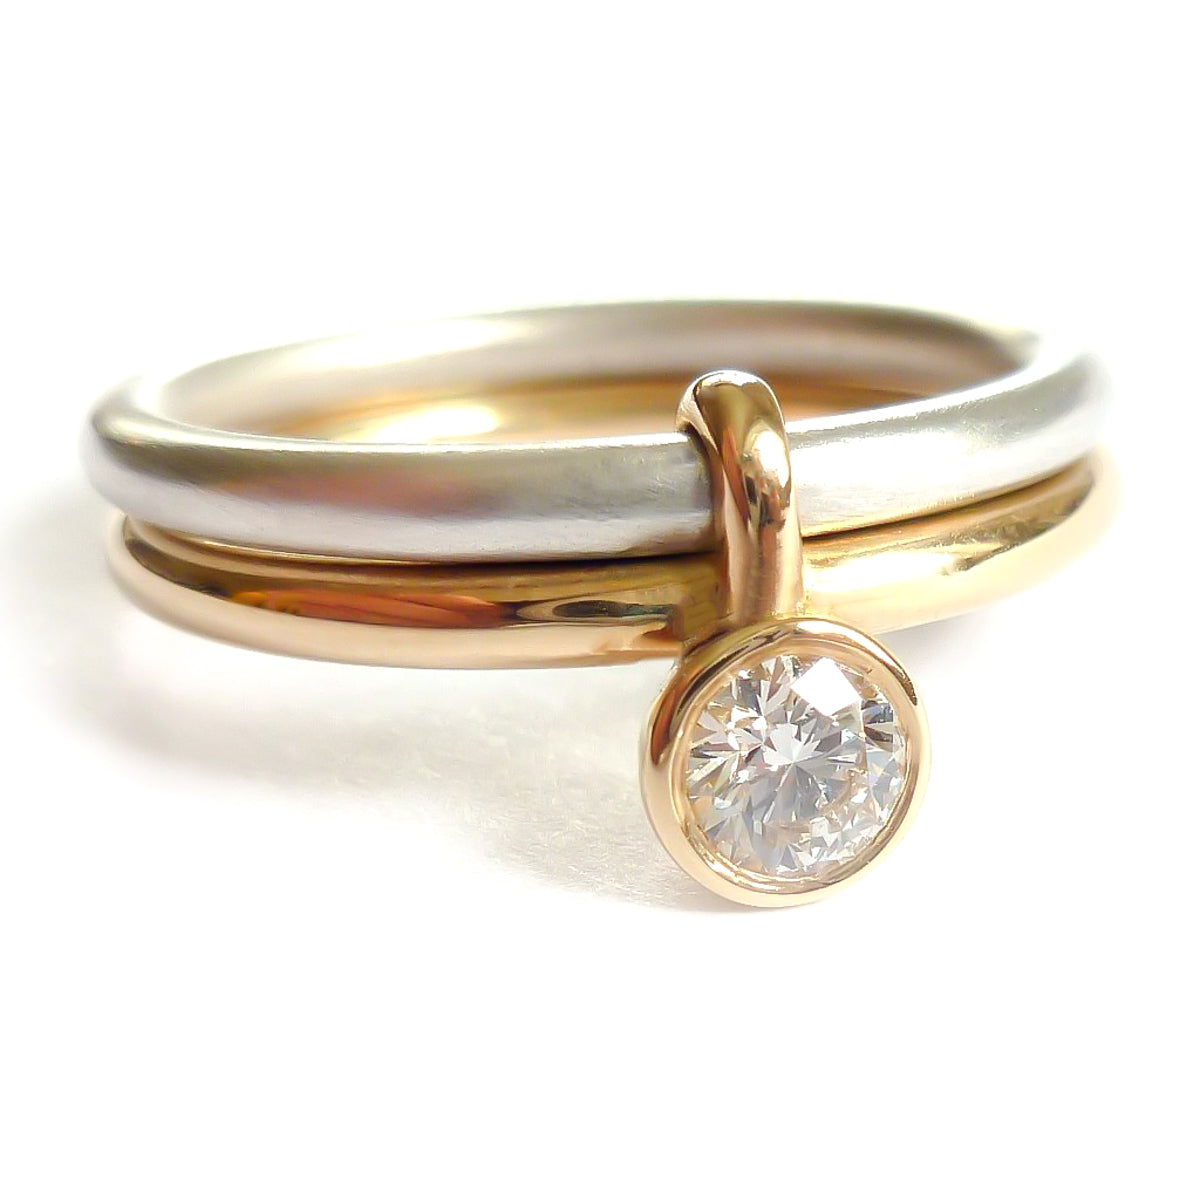 Contemporary engagement ring commissioning buy now online Sue Lane